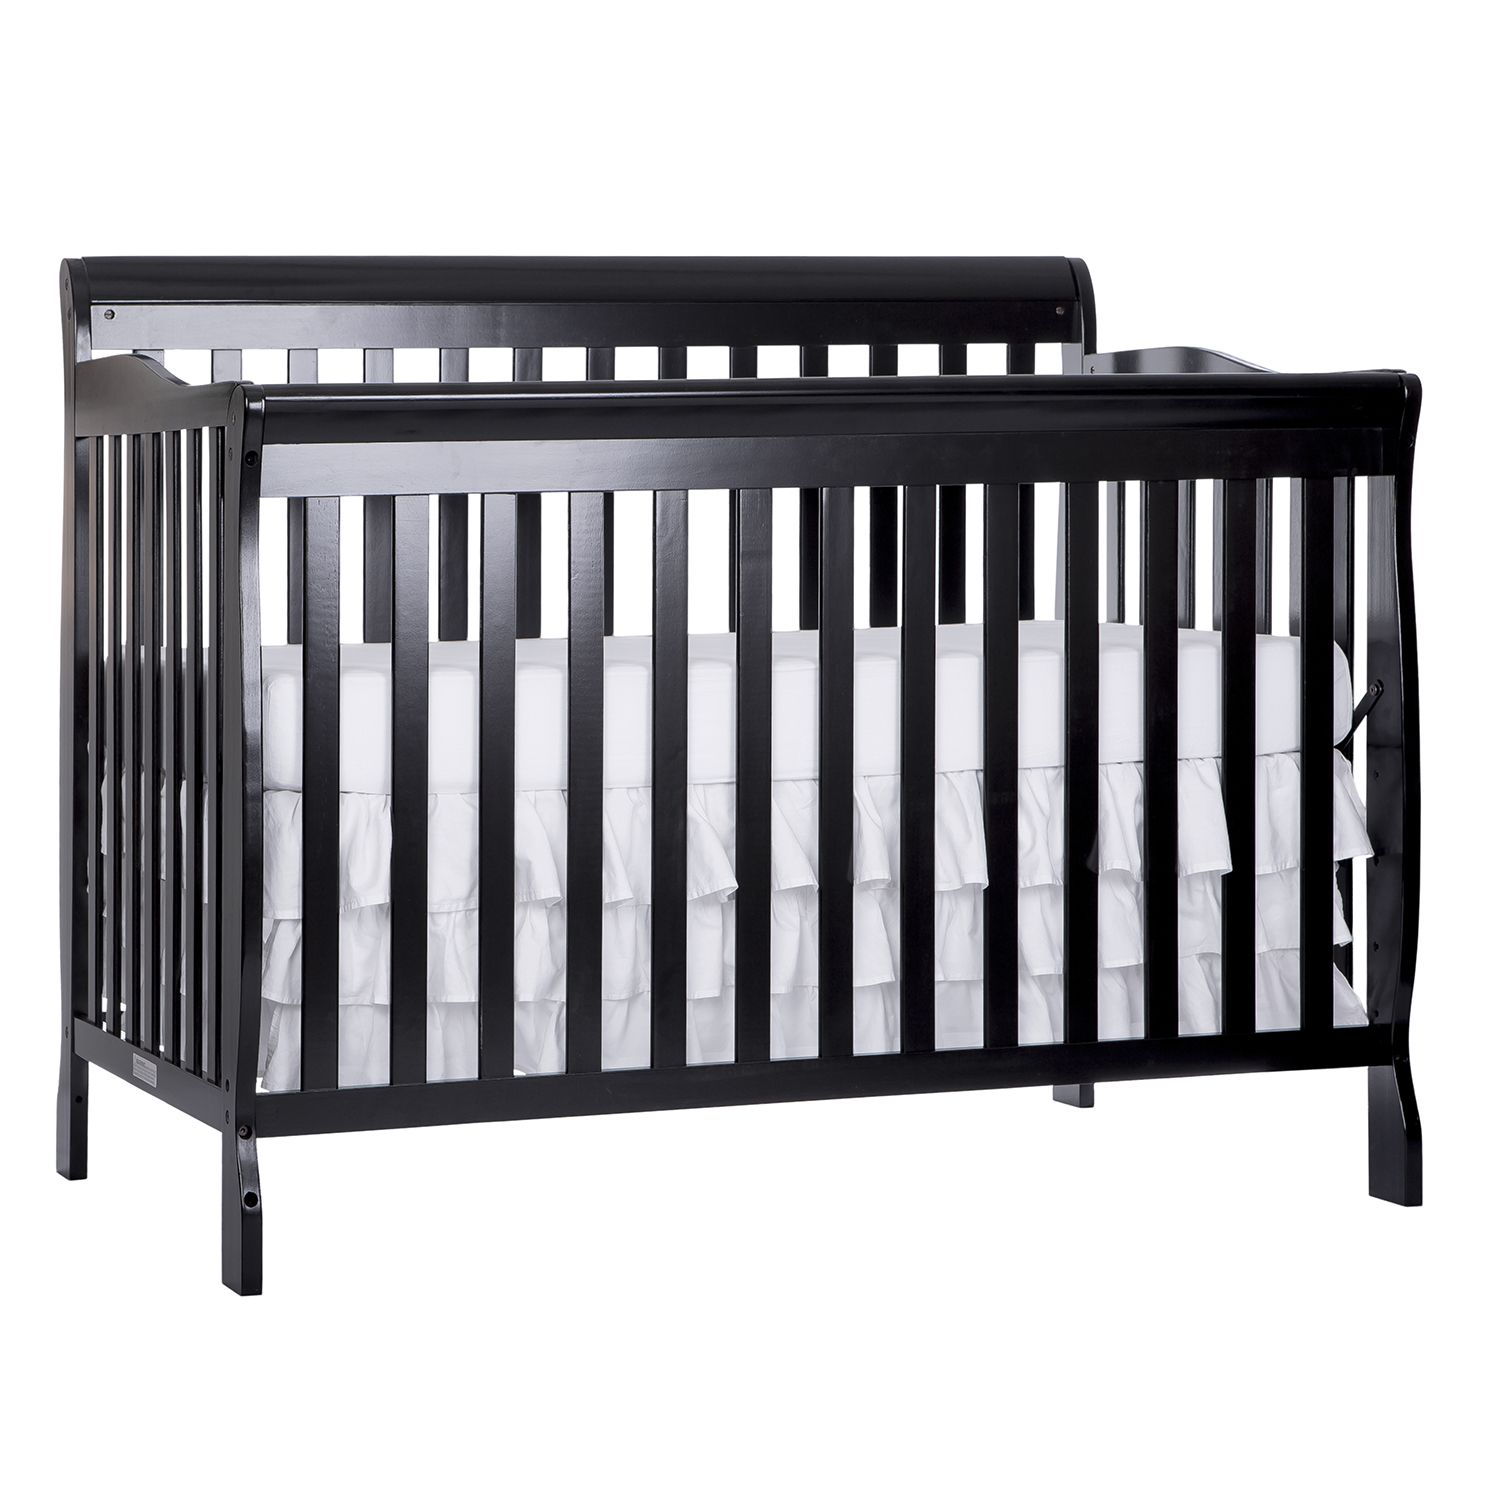 129 99 In 2020 Best Baby Cribs Cheap Toddler Beds Convertible Toddler Bed